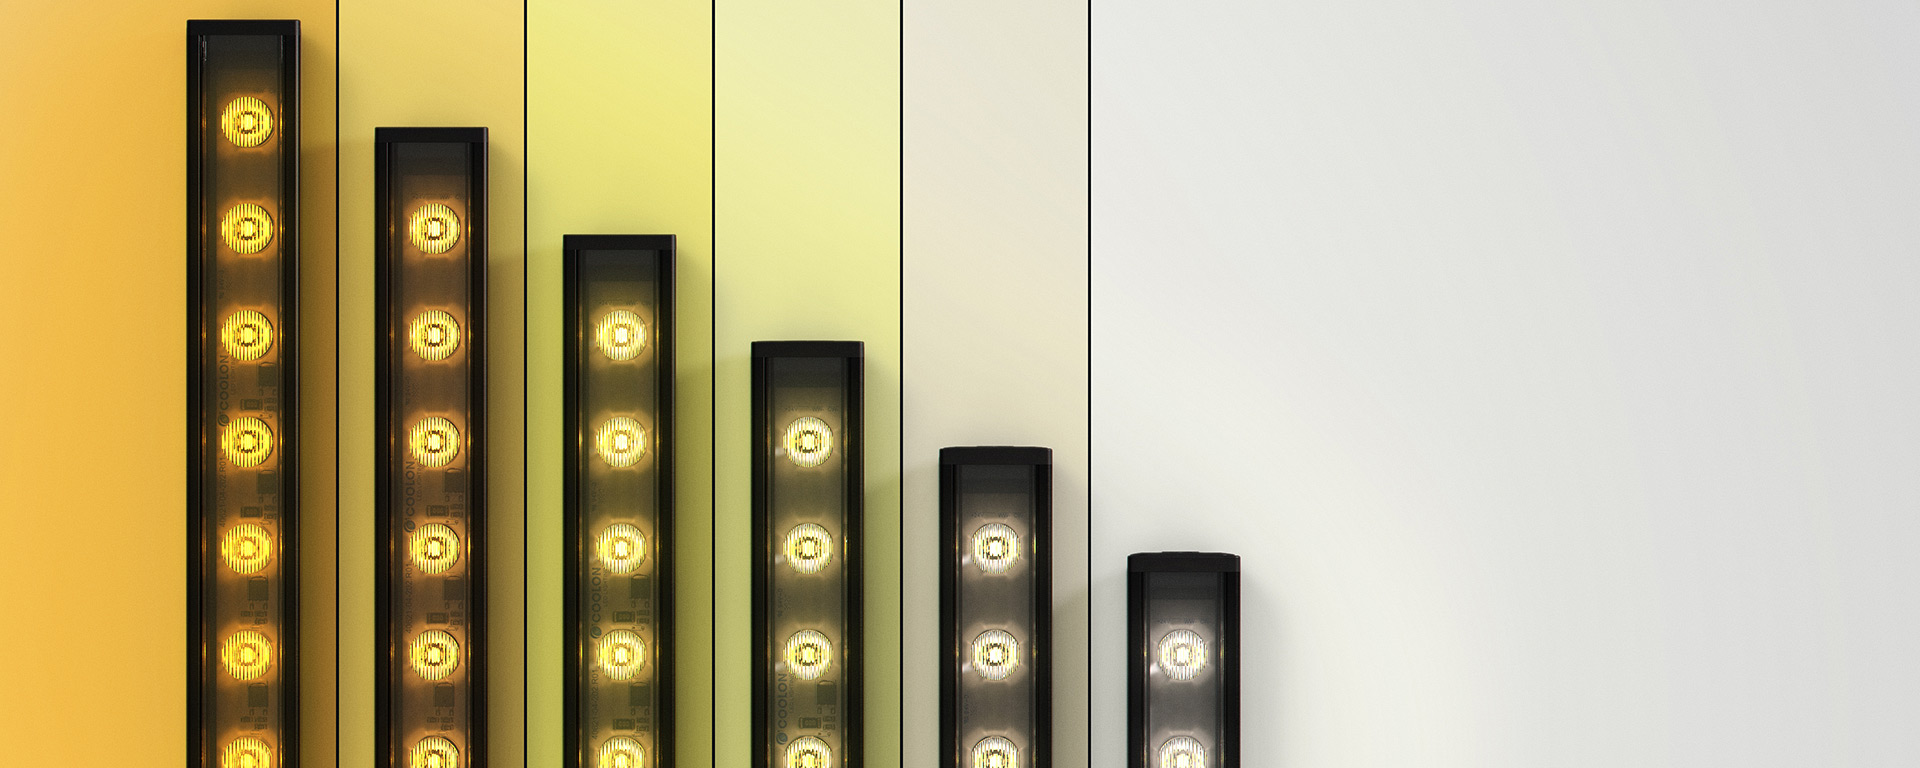 Reproduce and maintain perfect white light ranging from 2700 to 6500k. Colour temperature (CCT) and intensity control made simple.